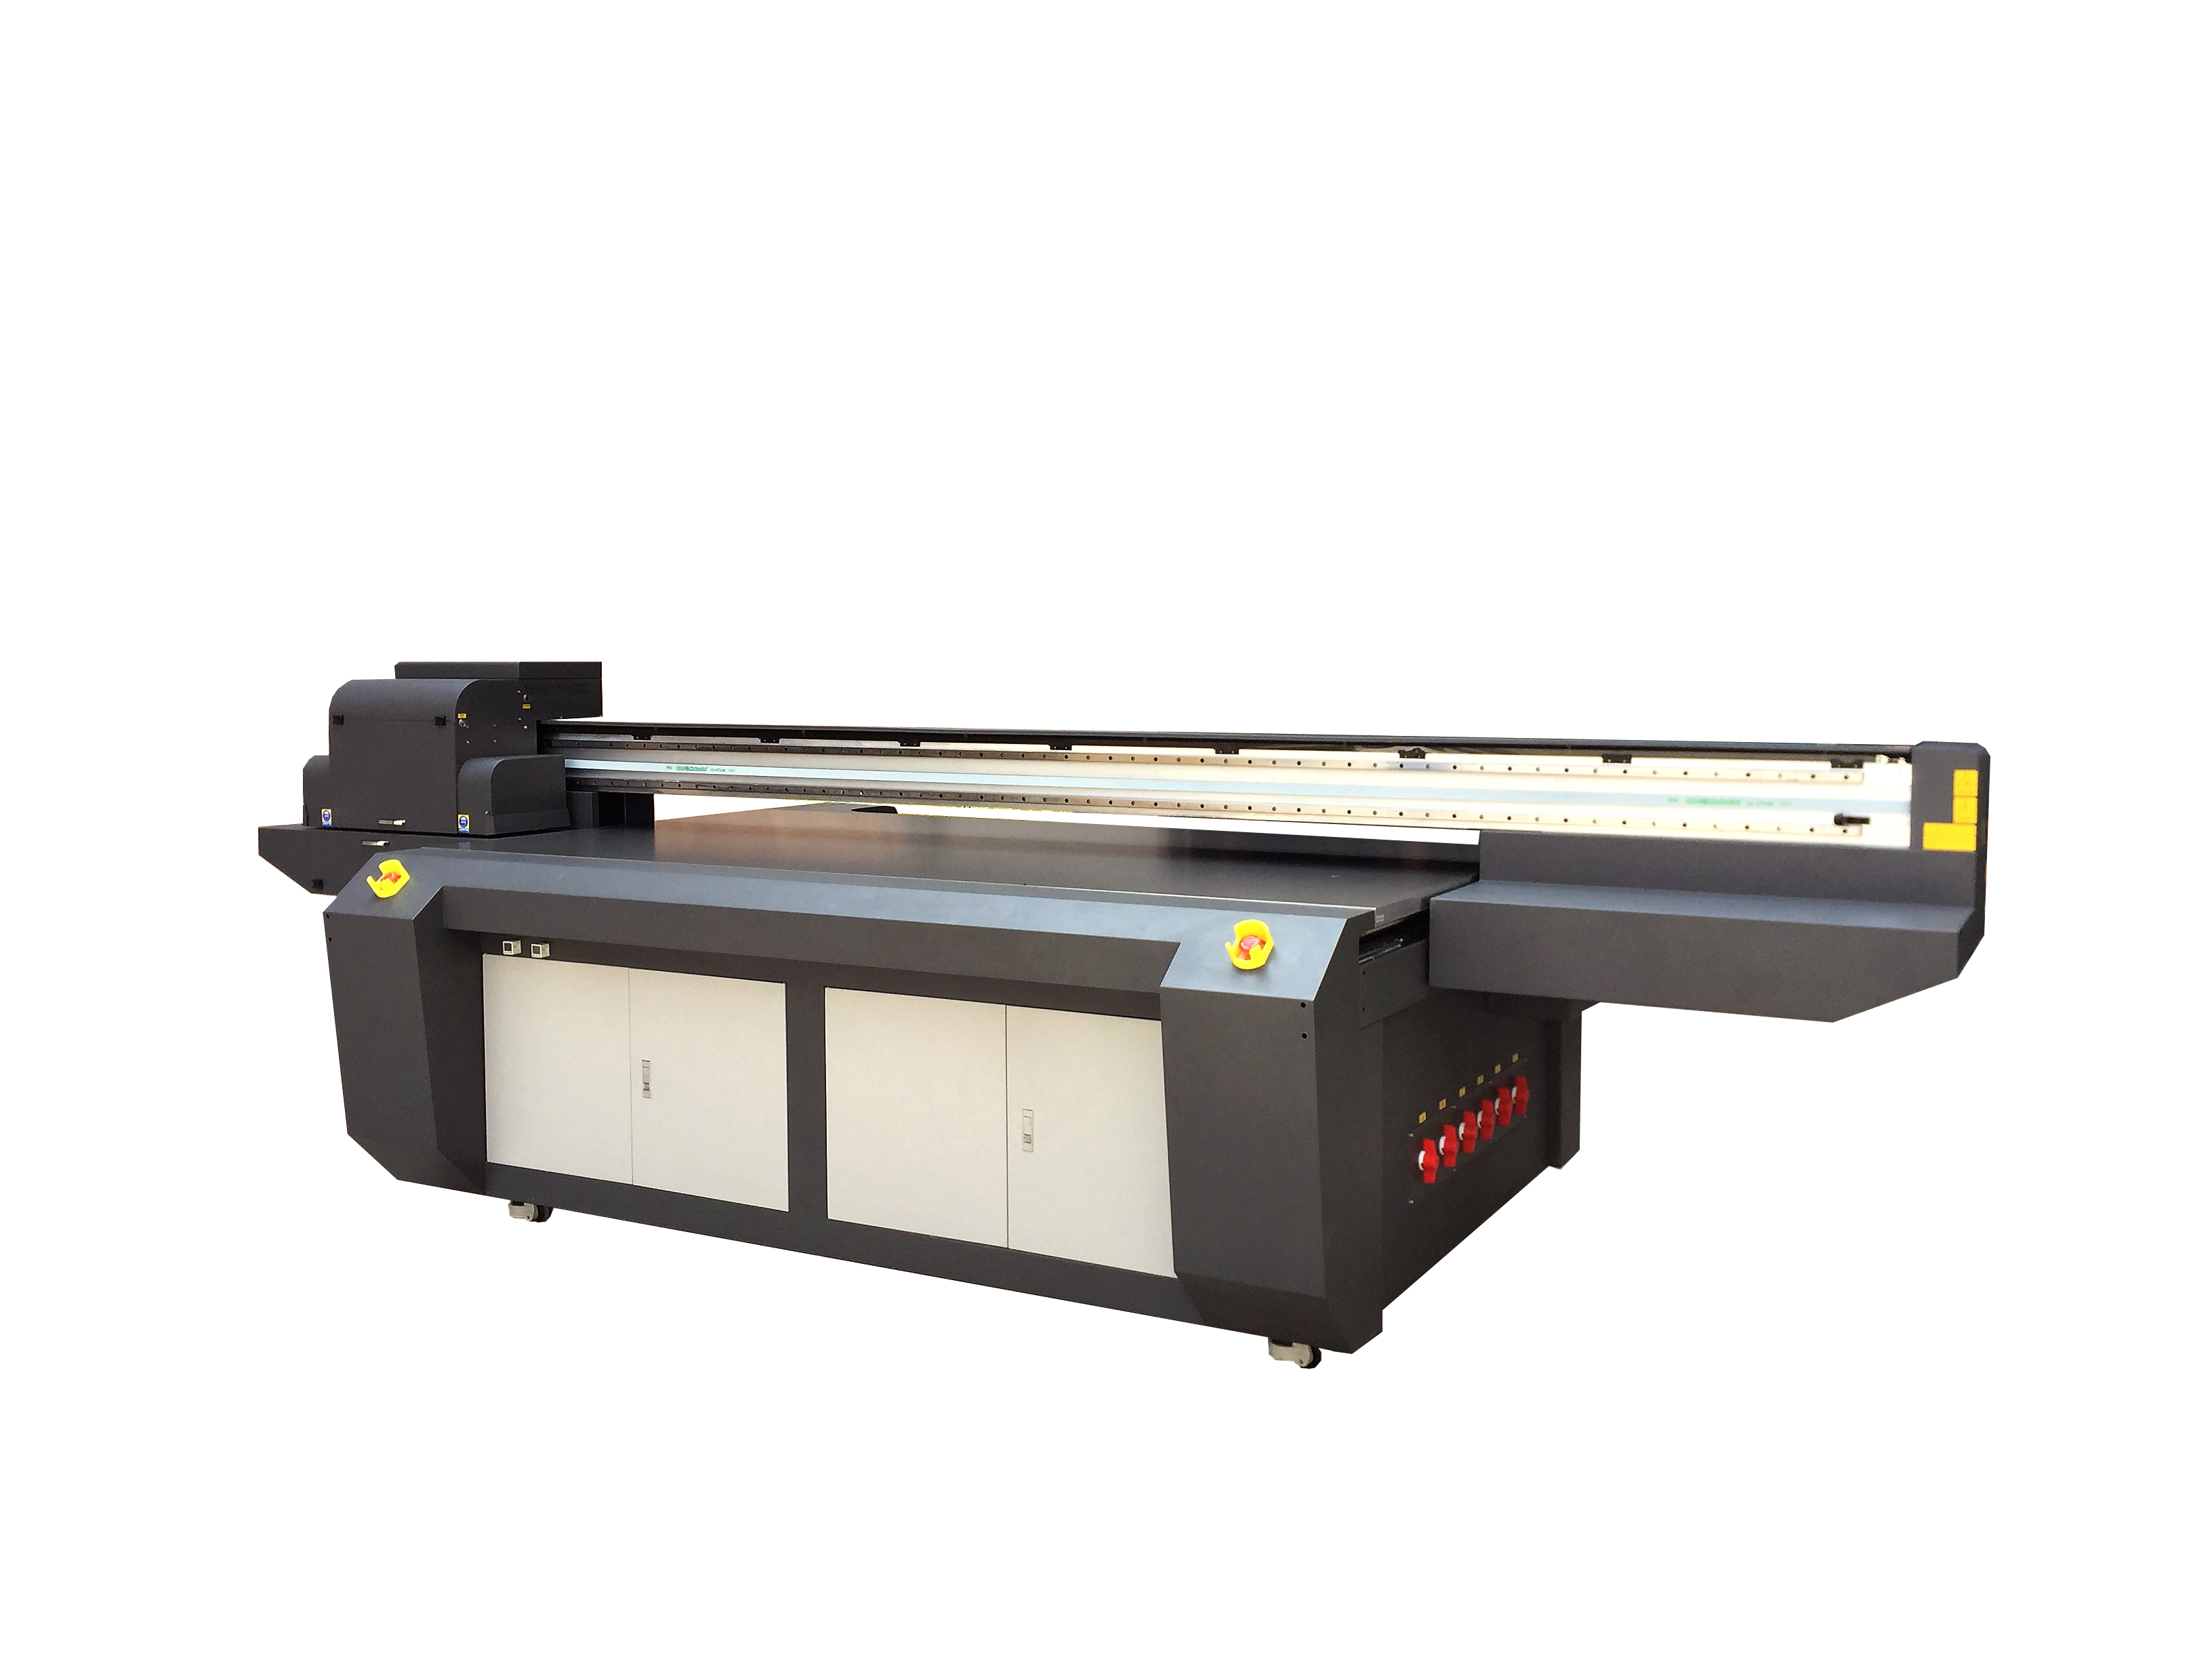 Highlights of YICAI UV flatbed printer